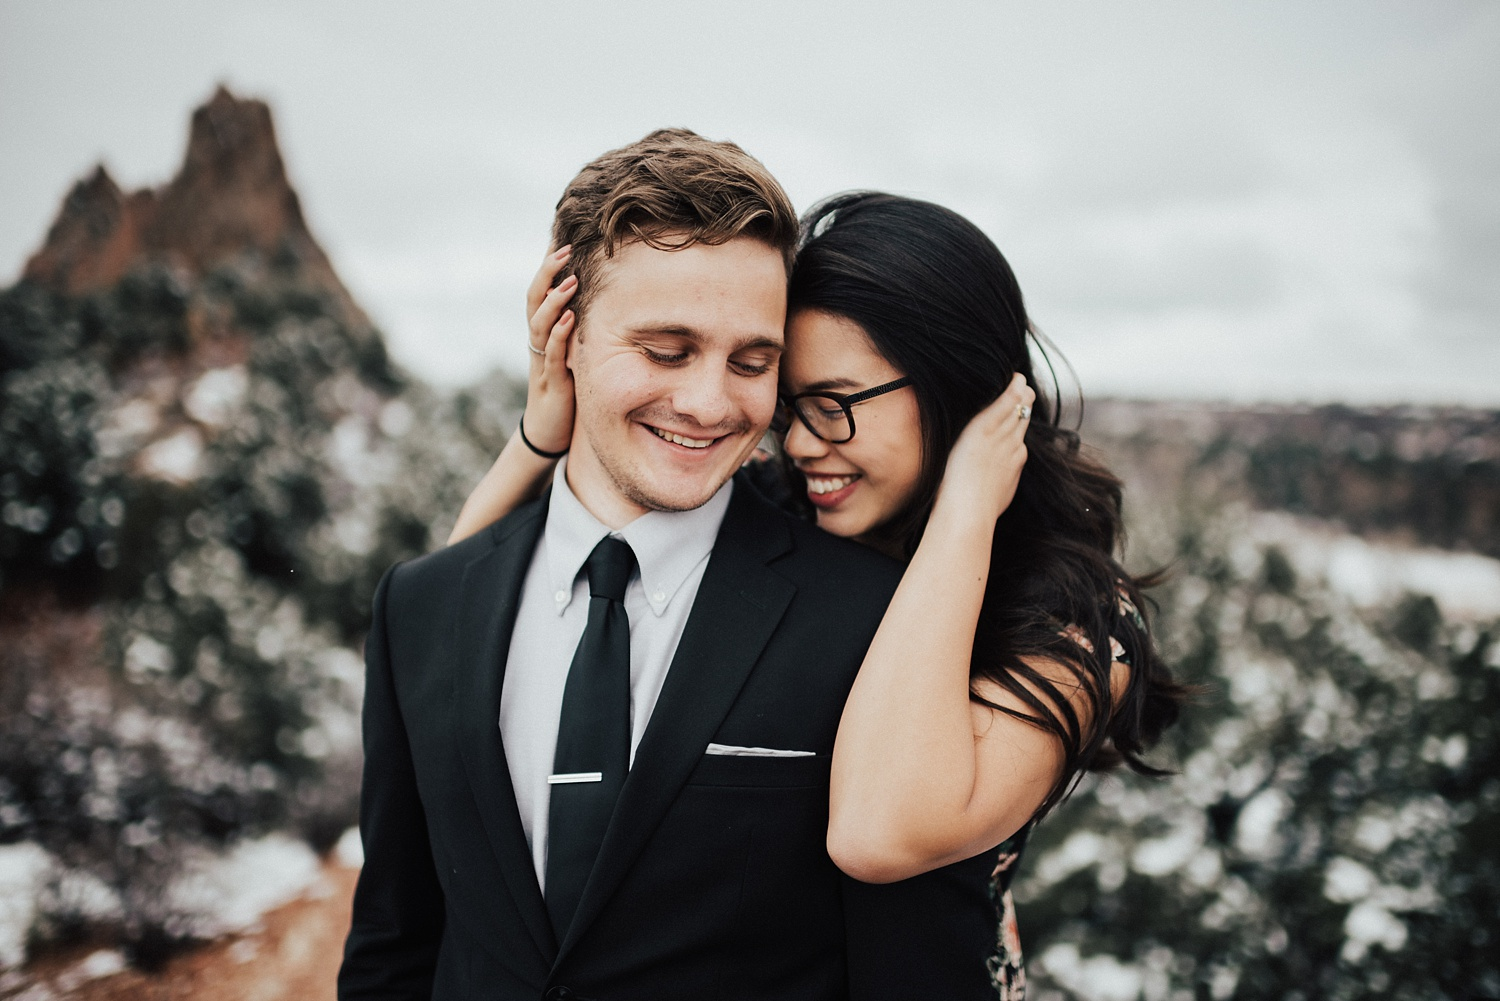 Nate_shepard_photography_engagement_wedding_photographer_denver_colorado_0229.jpg